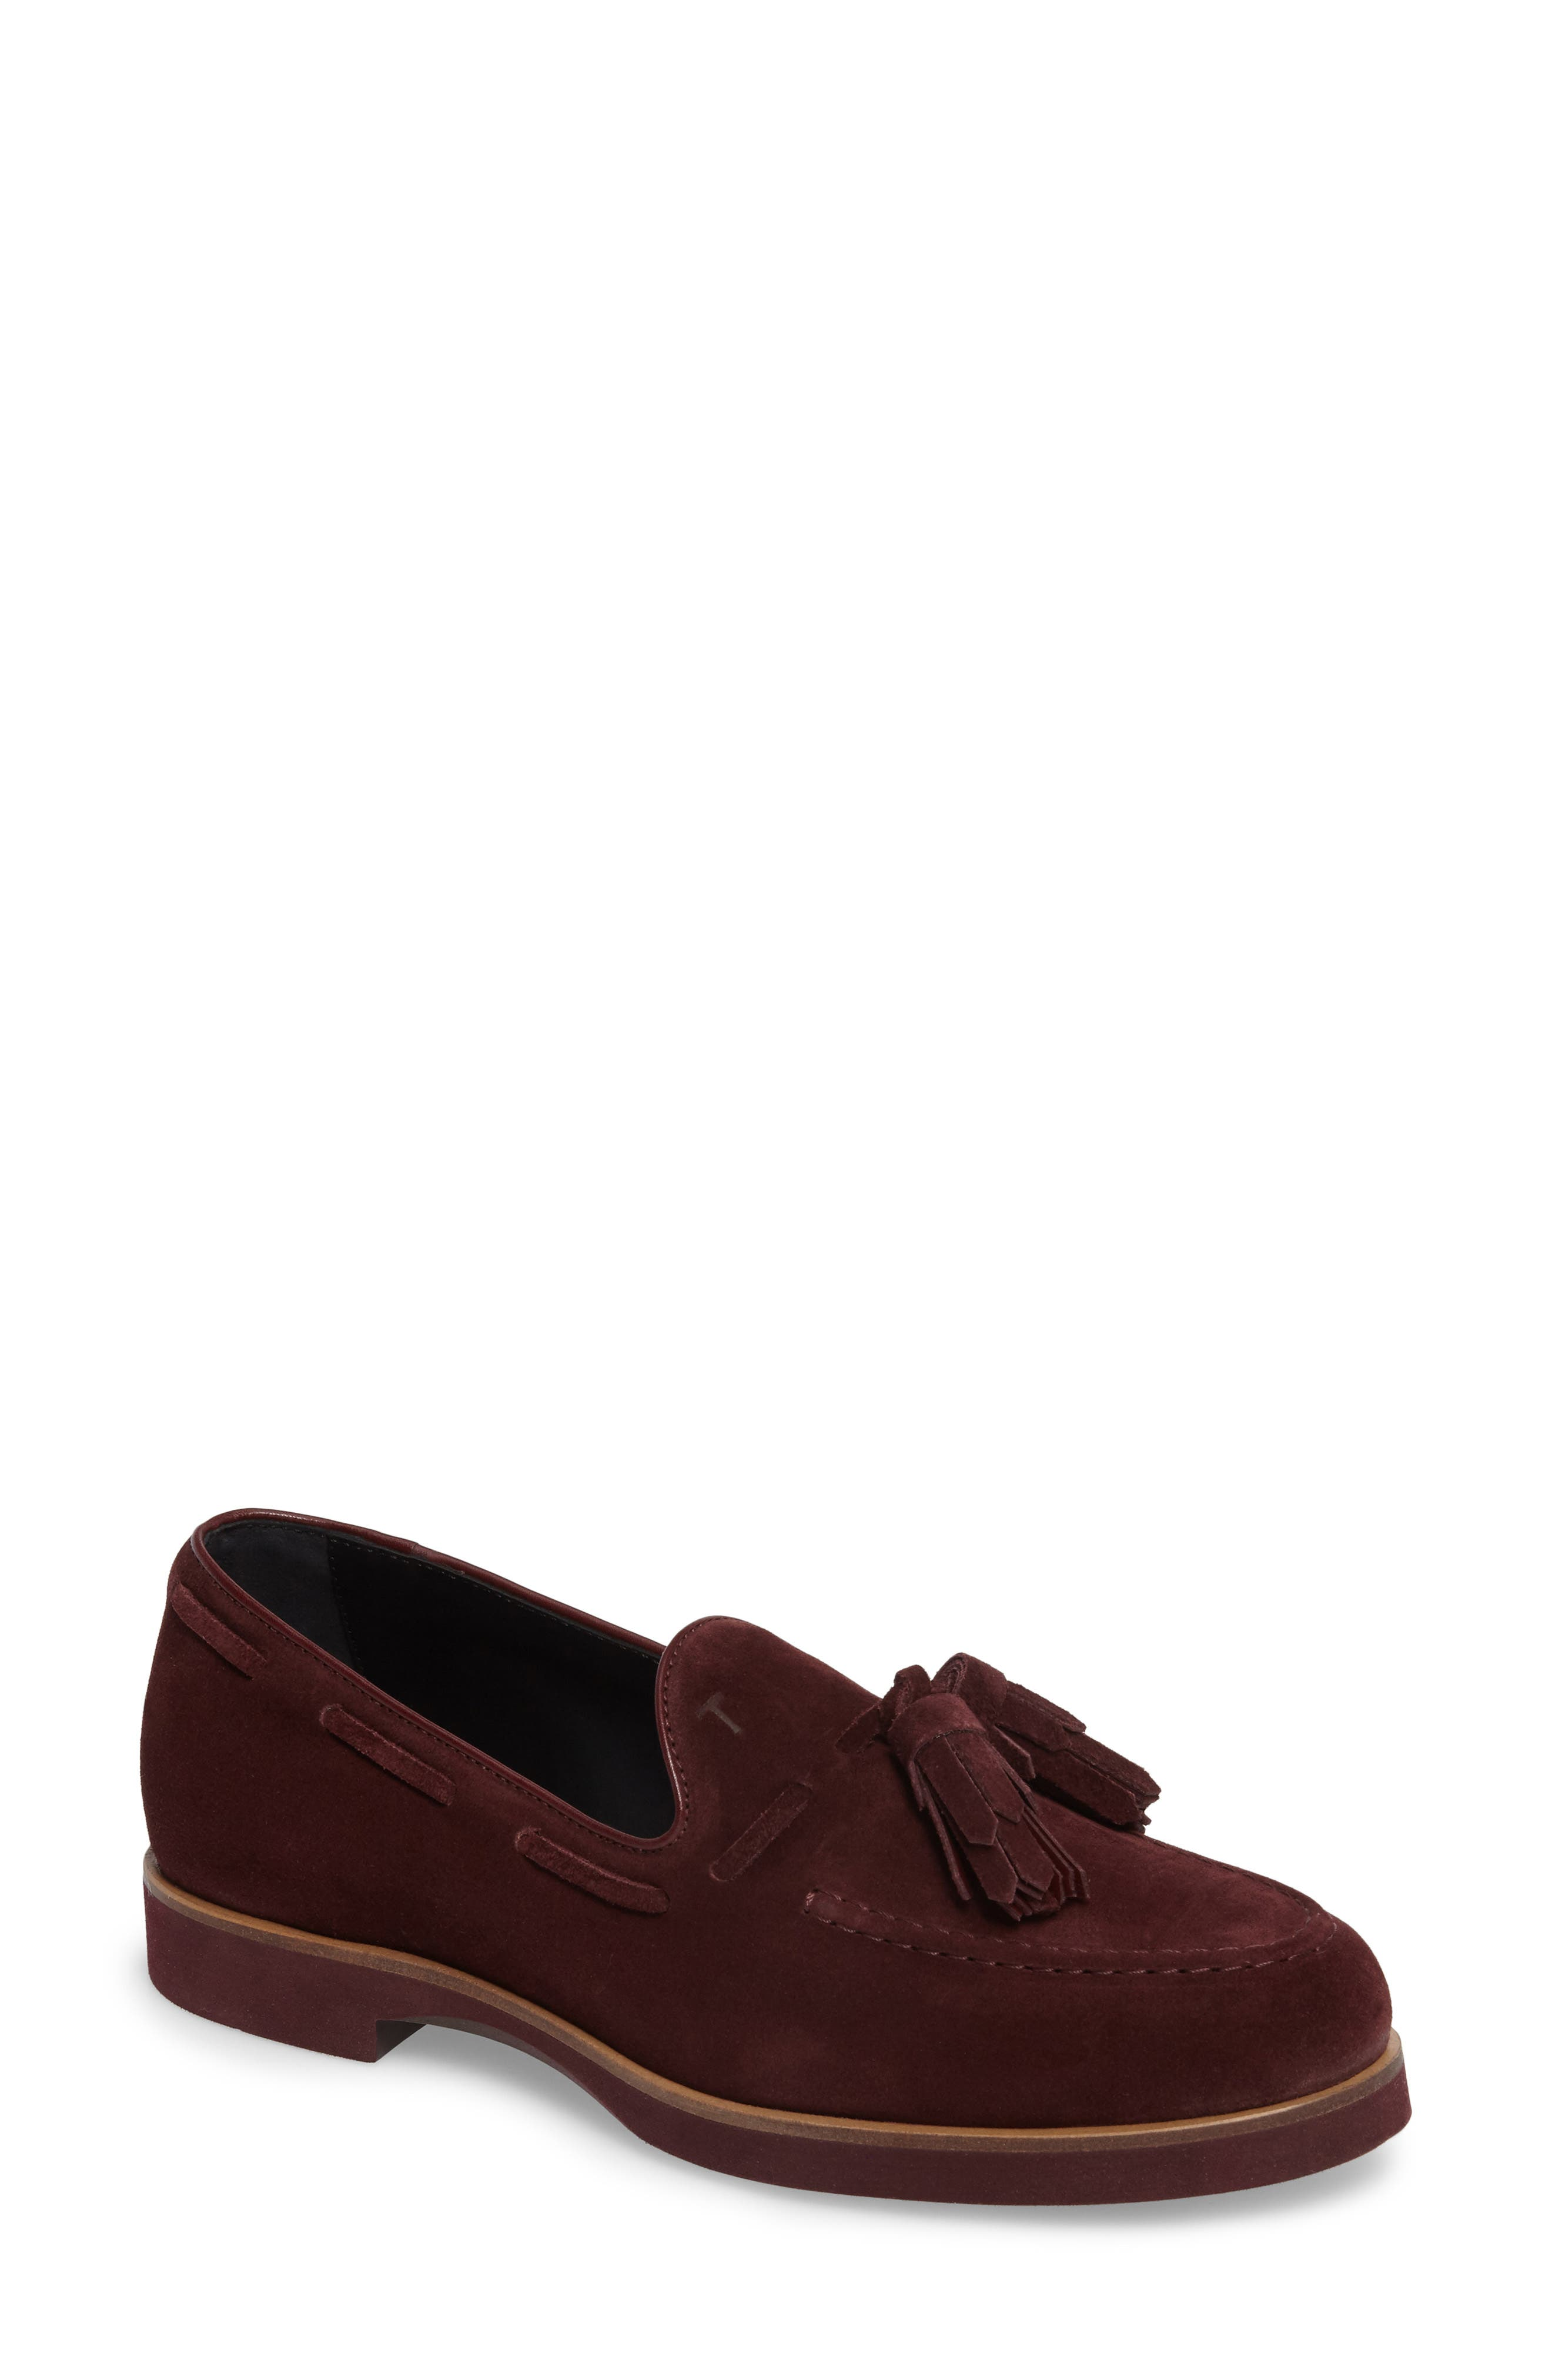 Tod's Tassel Loafer (Women)